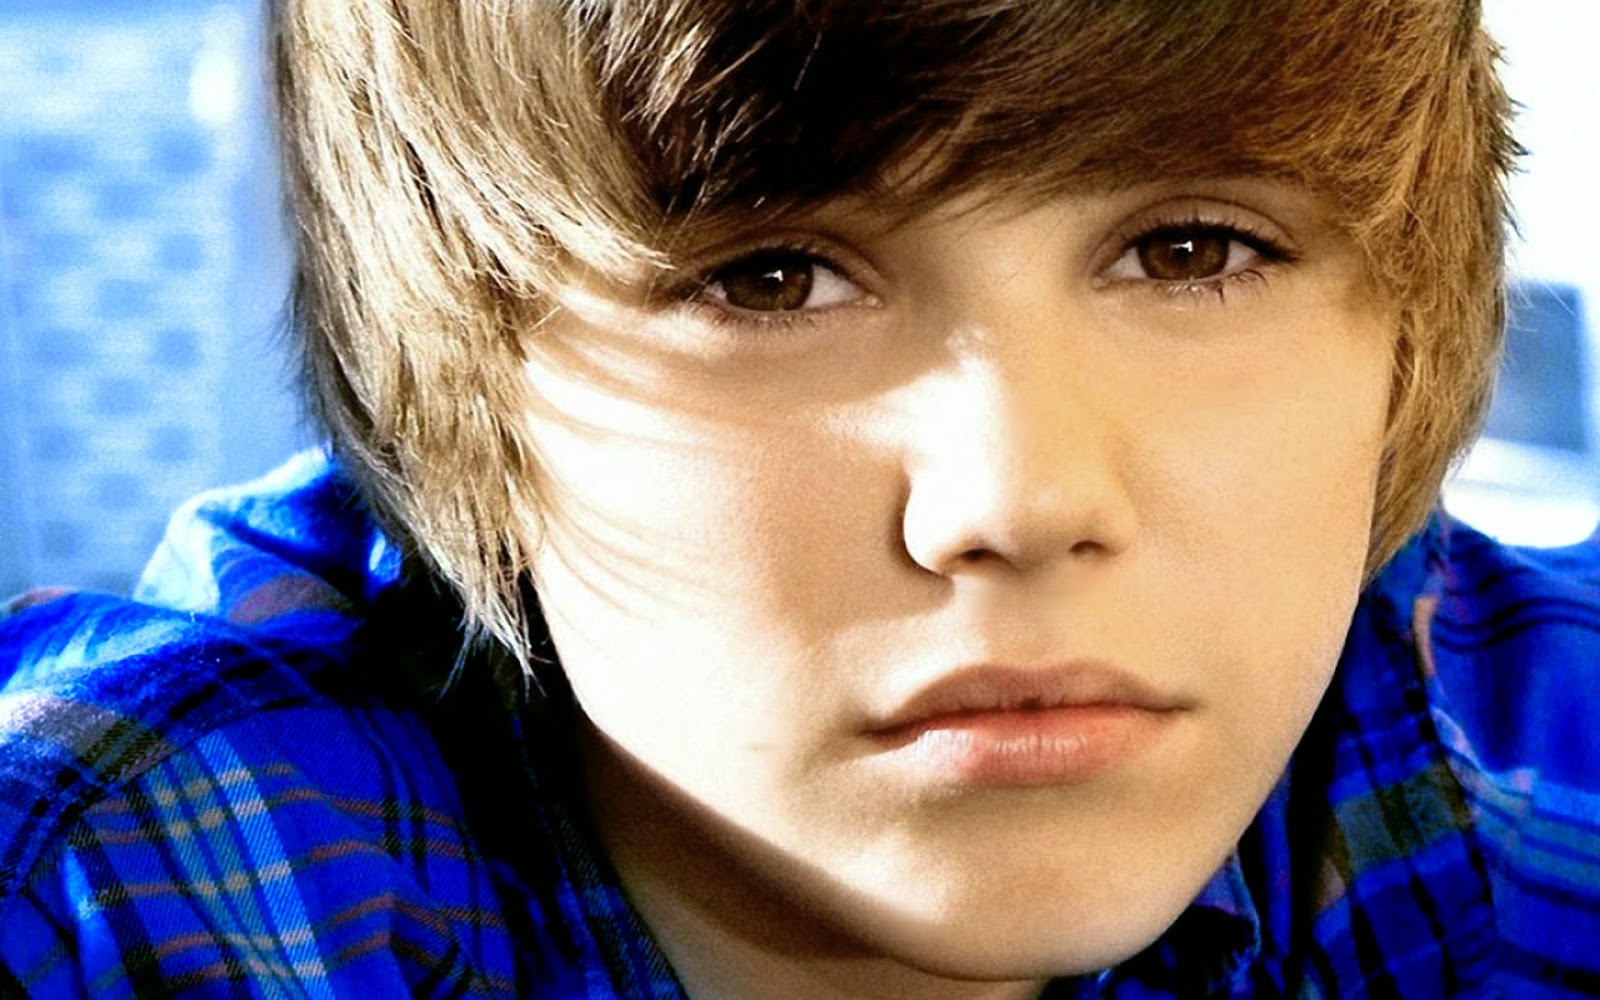 Justin Bieber Latest HD Wallpapers of 2015 Celebrity Hd Wallpapers 1600x1000